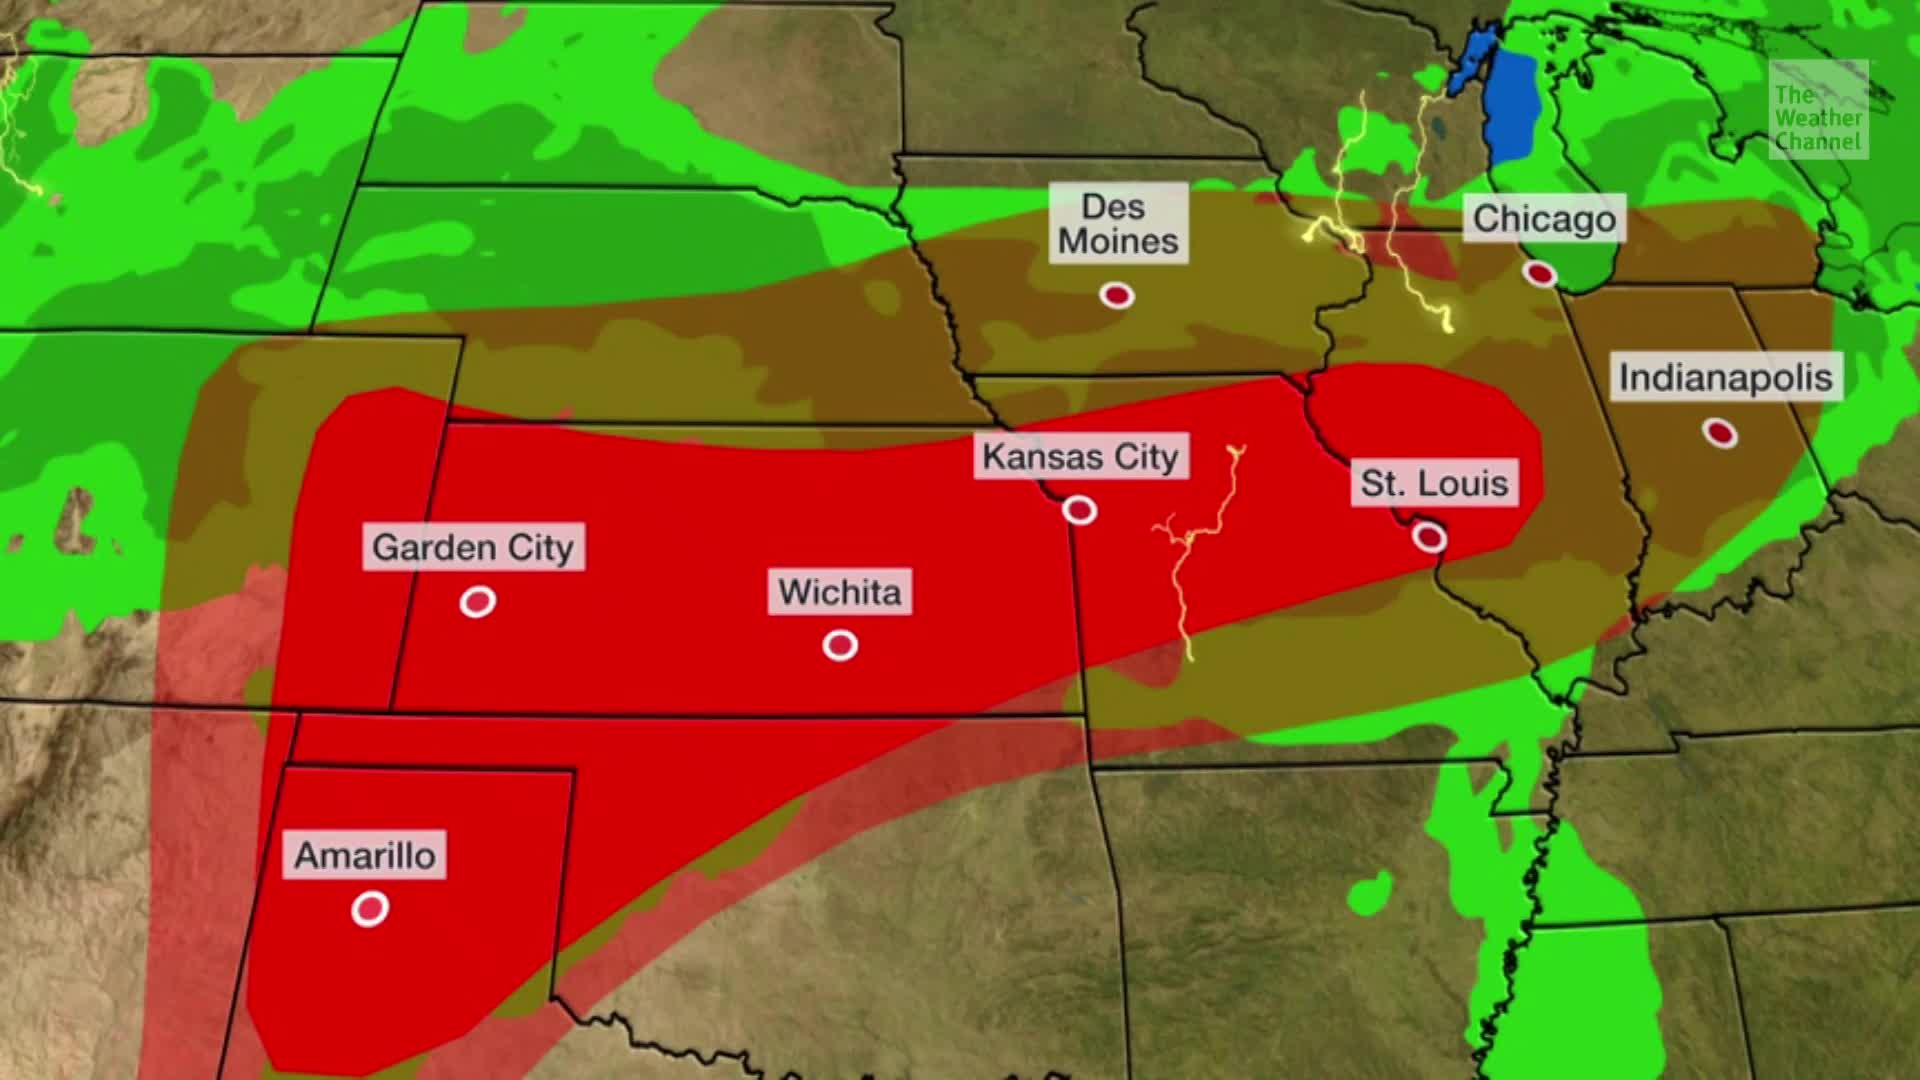 Another Day of Severe Weather for the Midwest